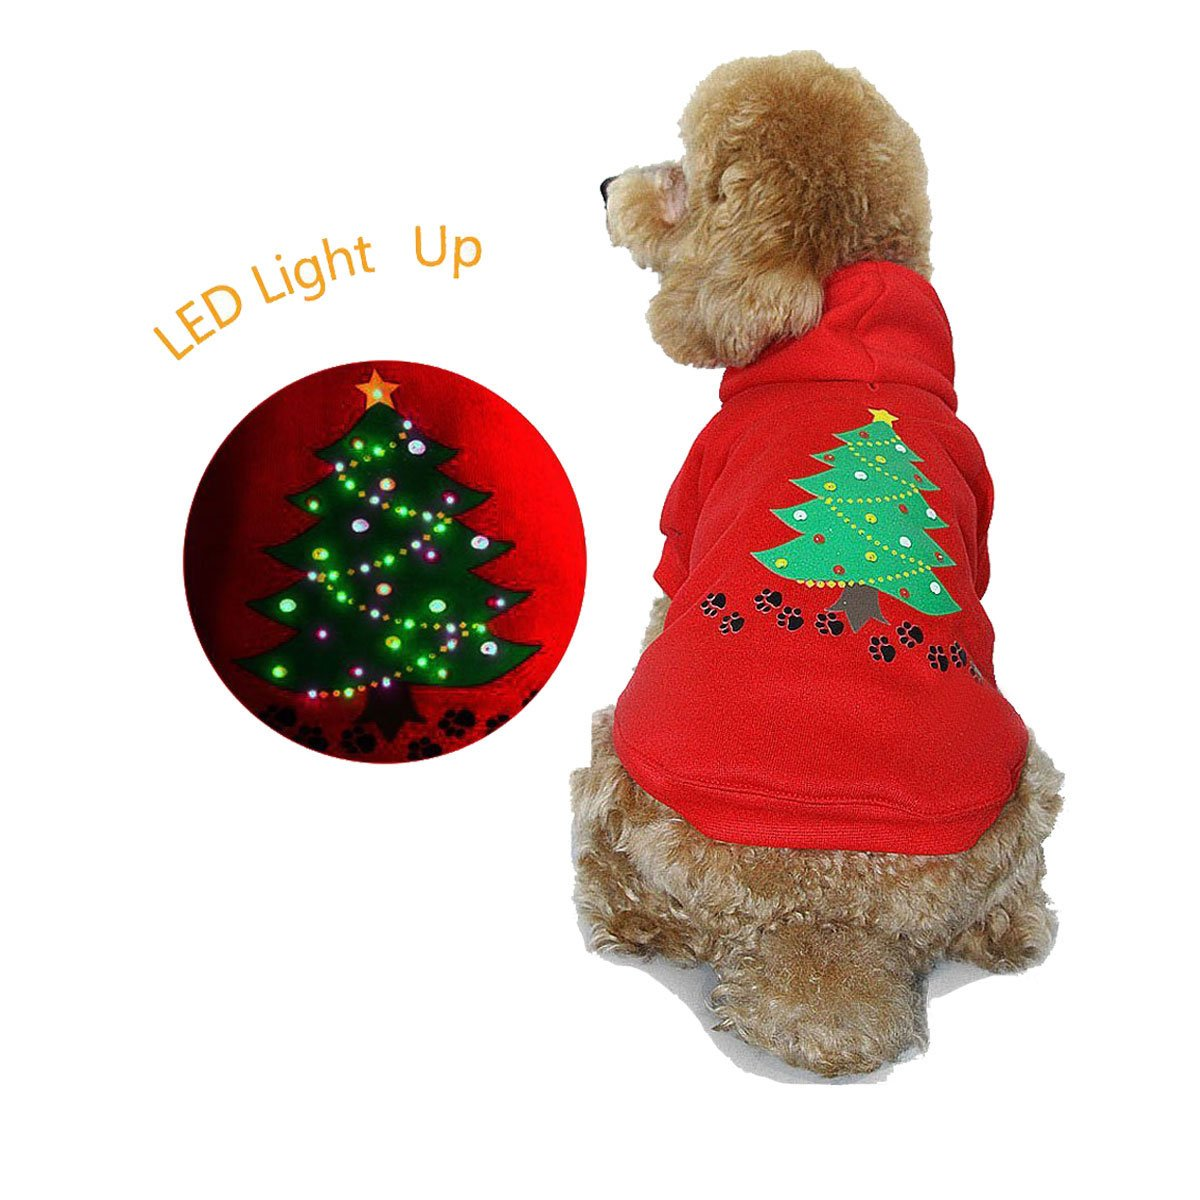 royalwise Light up Dog Shirt Costume Xmas Tree Pet LED Clothes Large Dog Hoodie Holiday Pet Sweater for Medium Dogs (Red, L) by royalwise